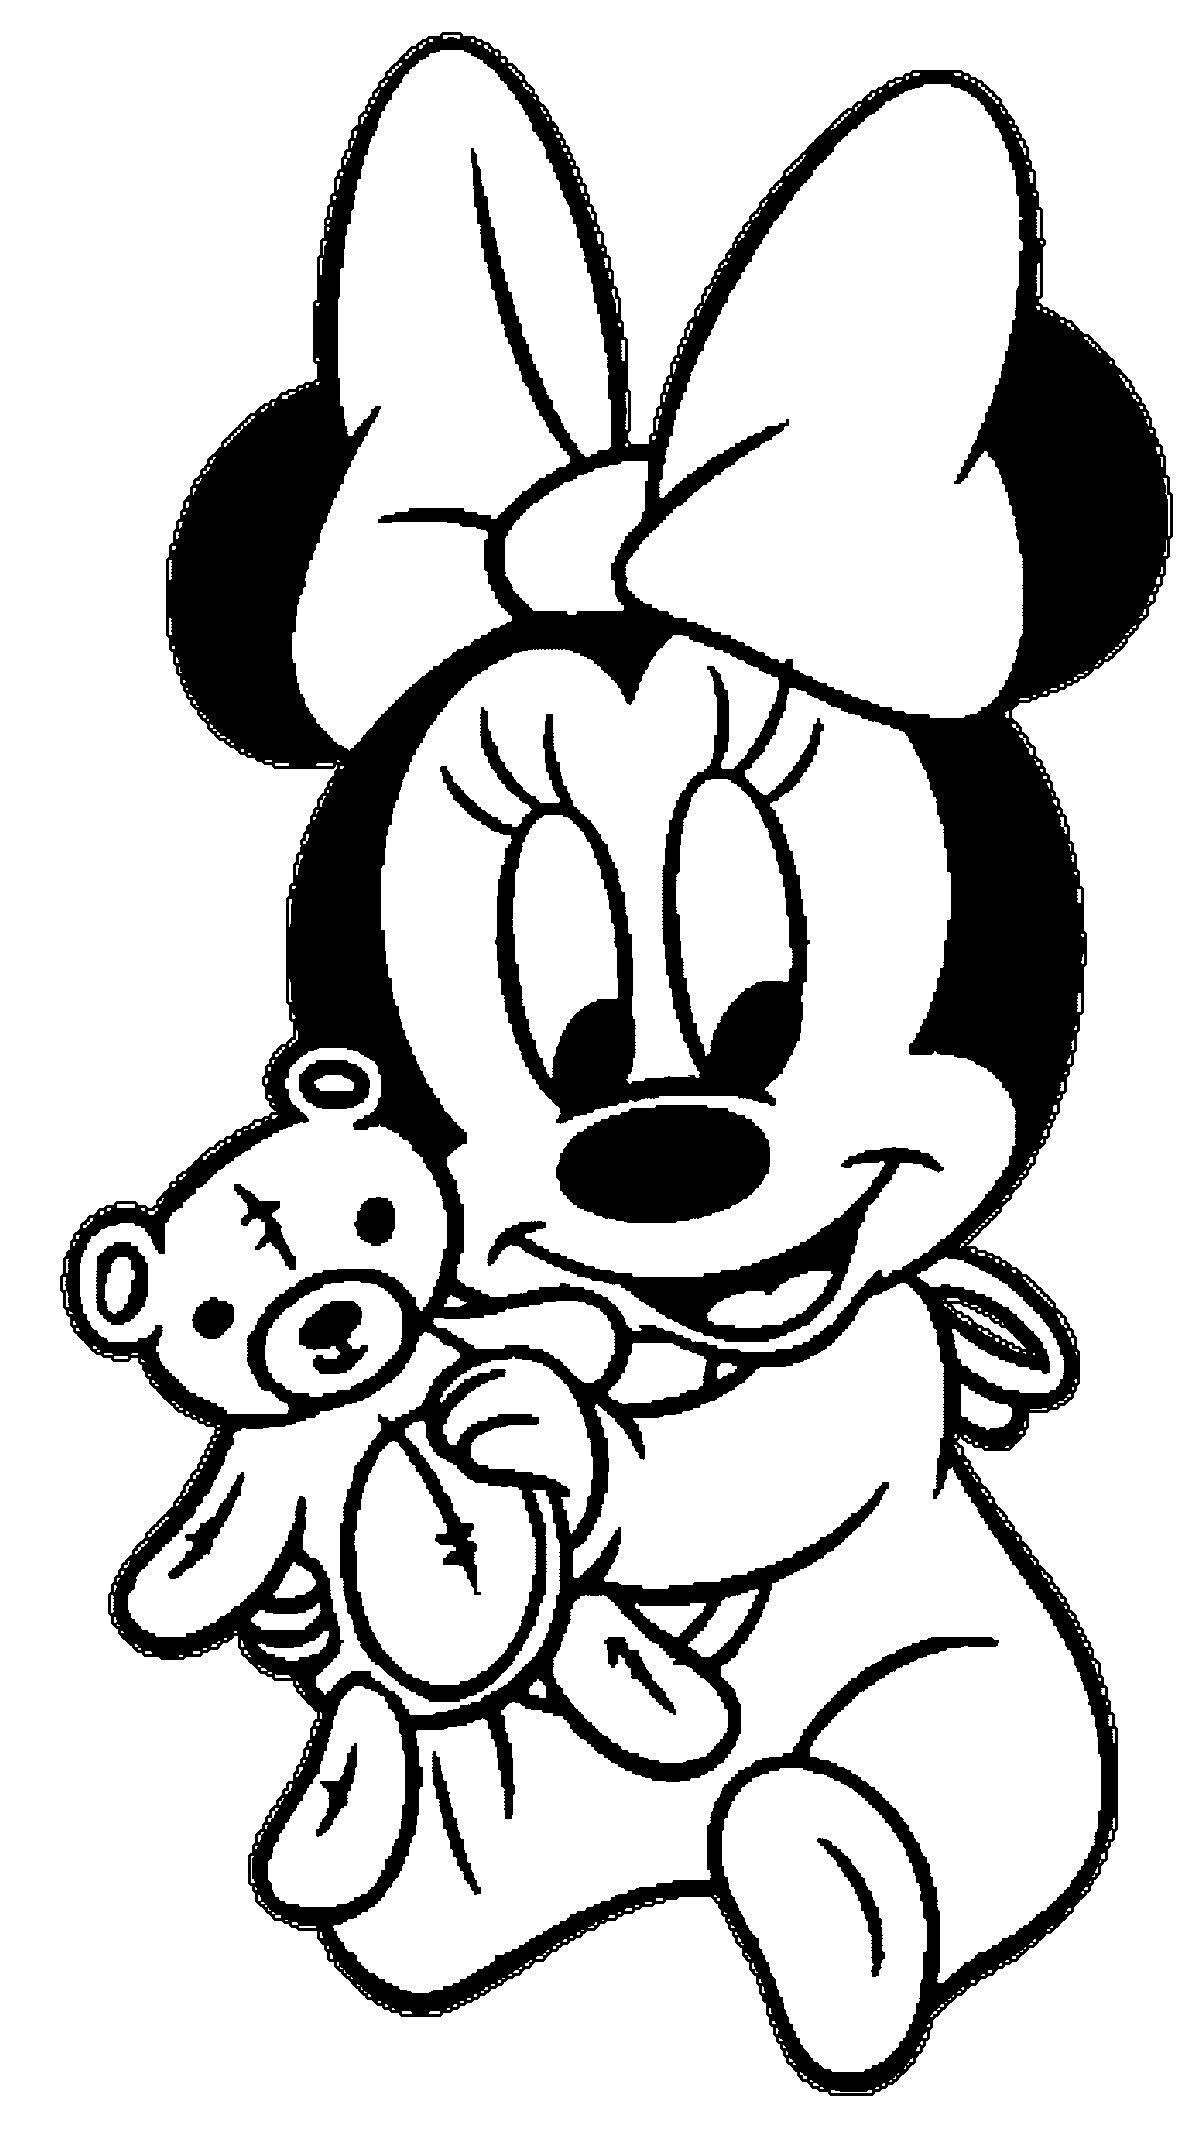 Minnie Baby Coloring Pages 2 By Sean Coloring Baby Minnie Mouse Coloring Pages Mickey Mouse Coloring Pages Baby Coloring Pages